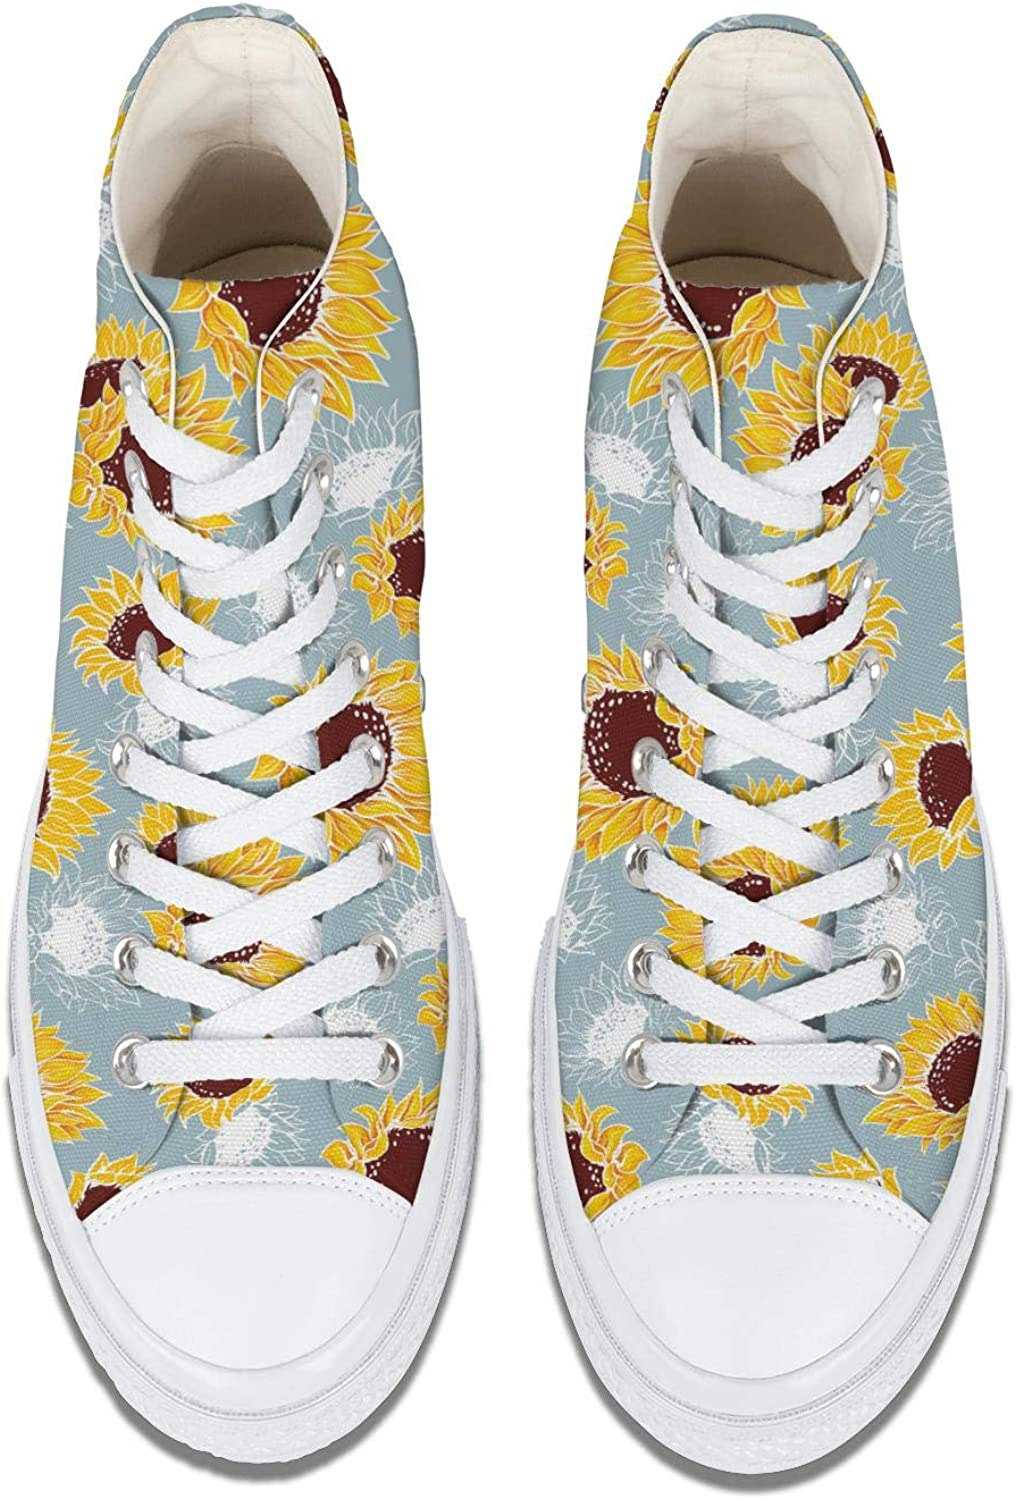 Daalgggg Girl Canvas Shoes High Top Lace Ups Running Shoes Sunflower Black Background Pattern Skate Trainers Sneaker